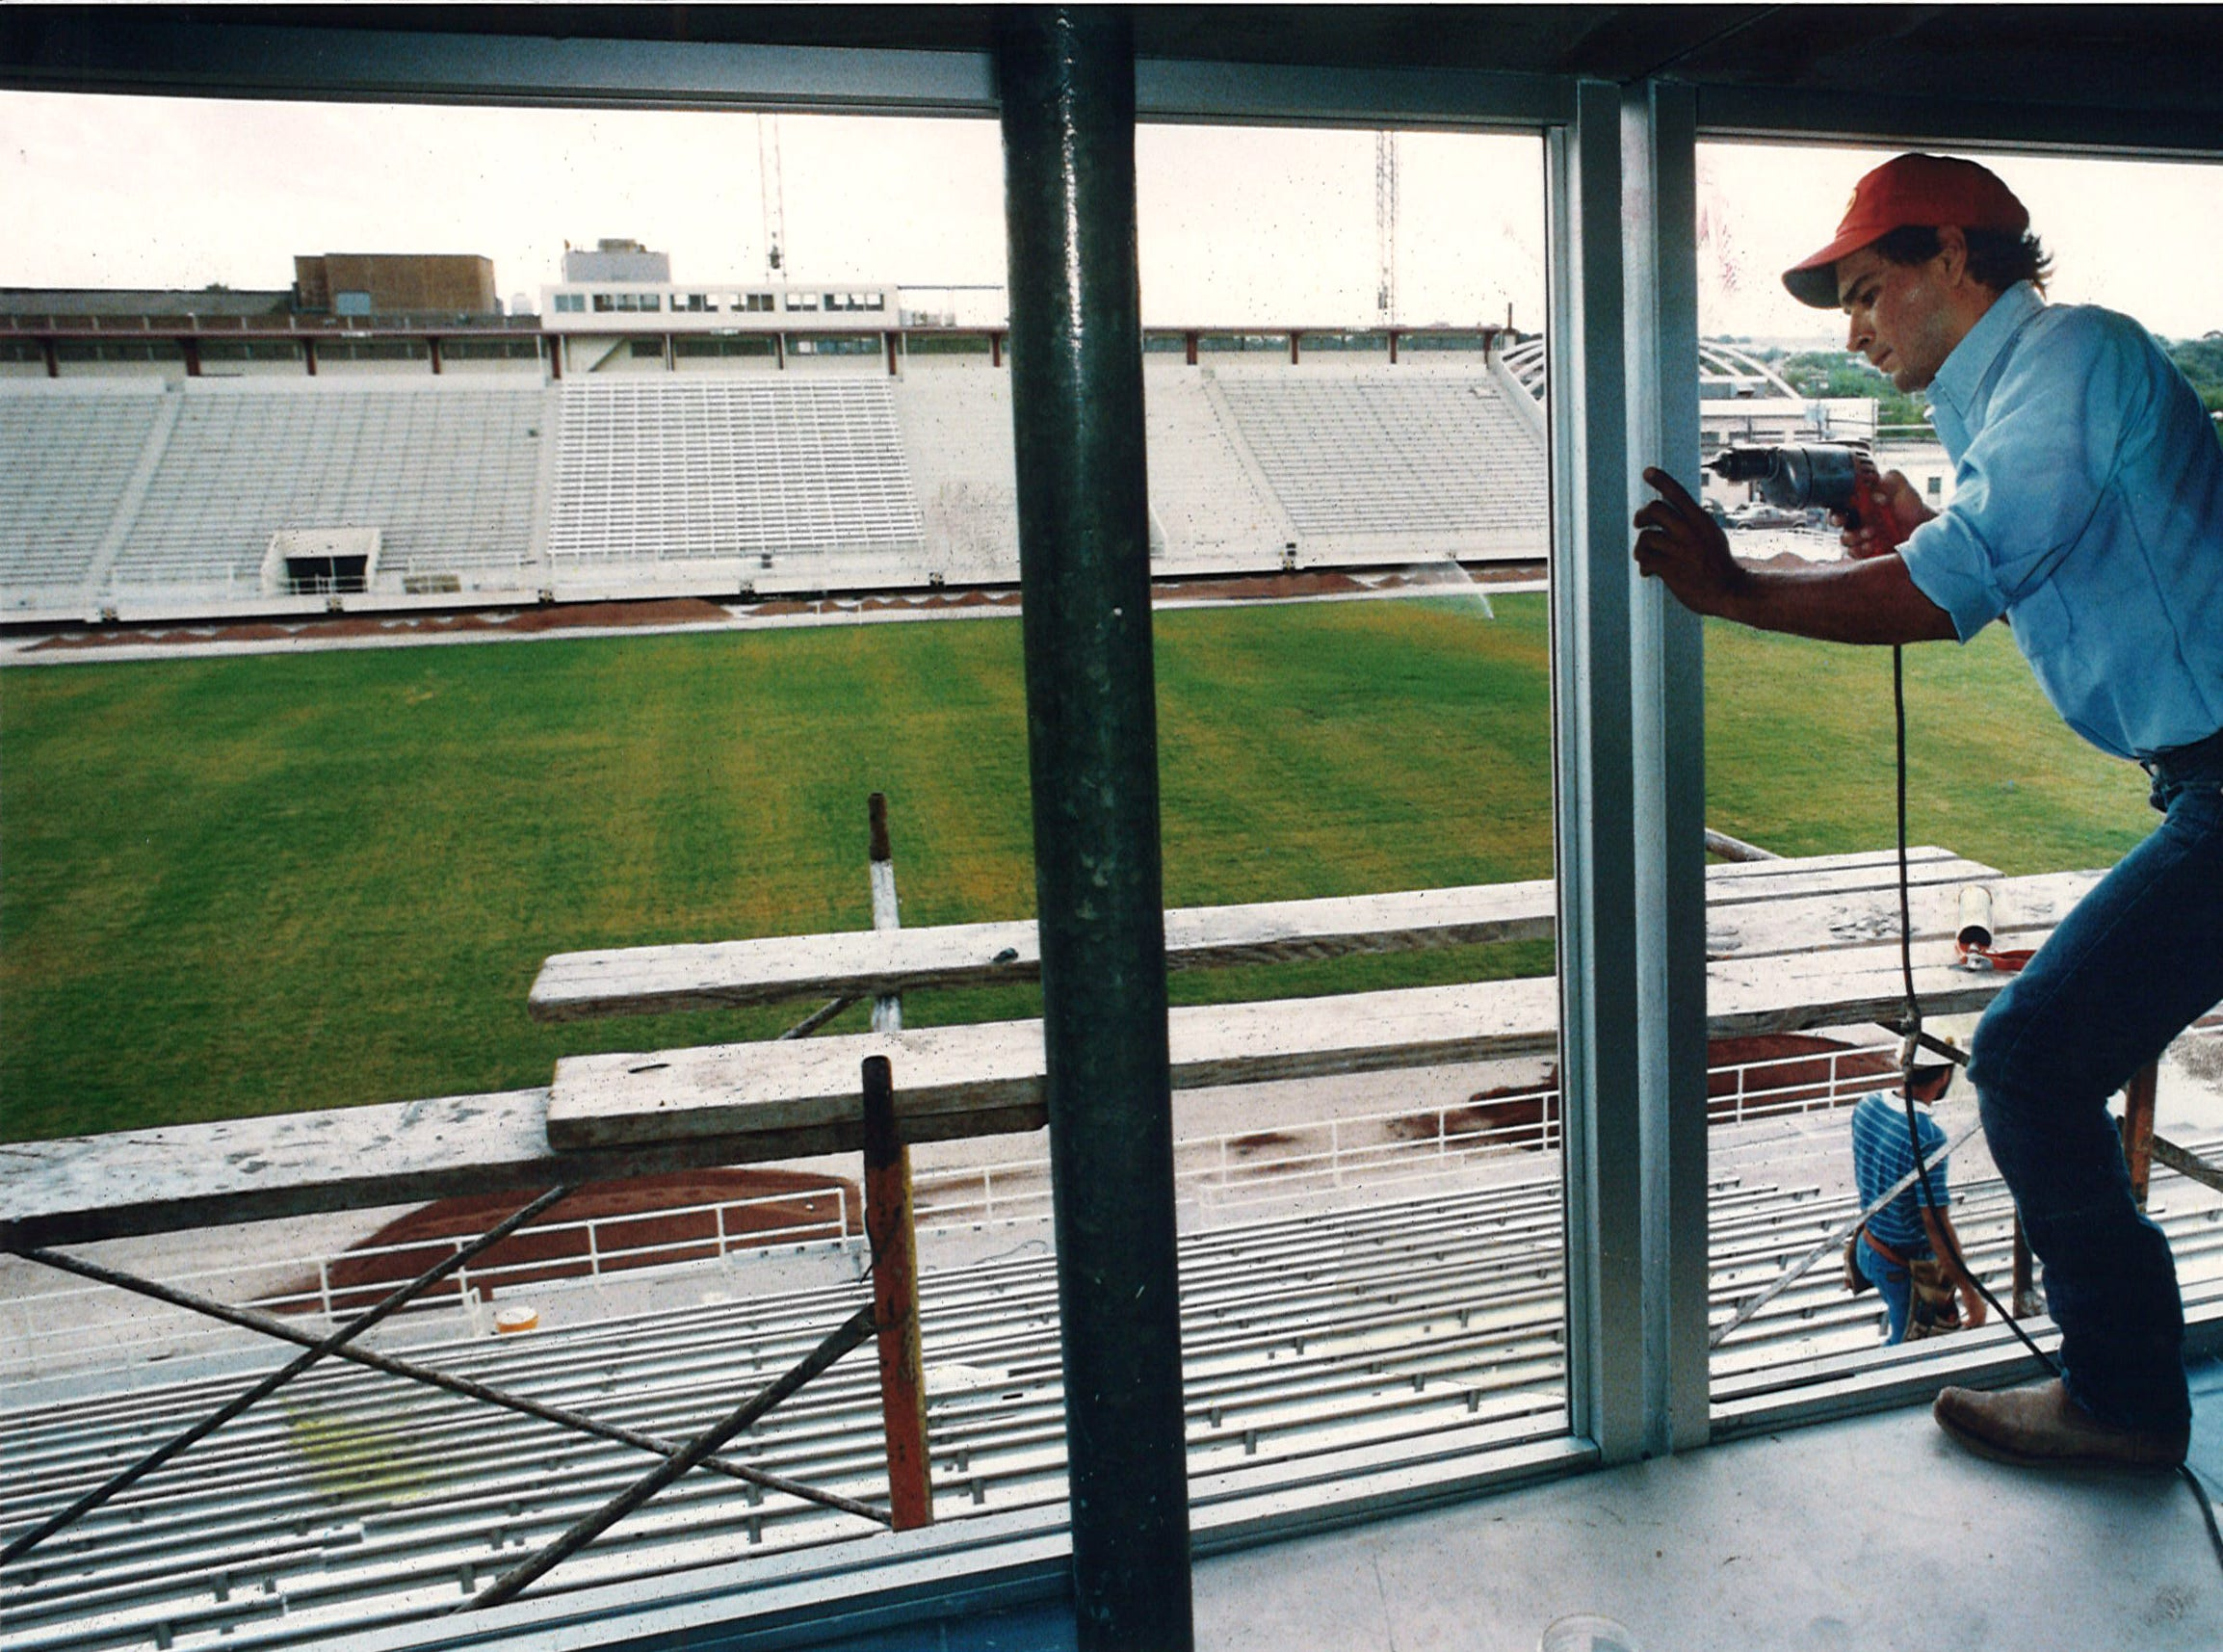 David Perez with Safety Glass of Corpus Christi works on the framing for new windows at the press box at Buccaneer Stadium on Aug. 25, 1992.